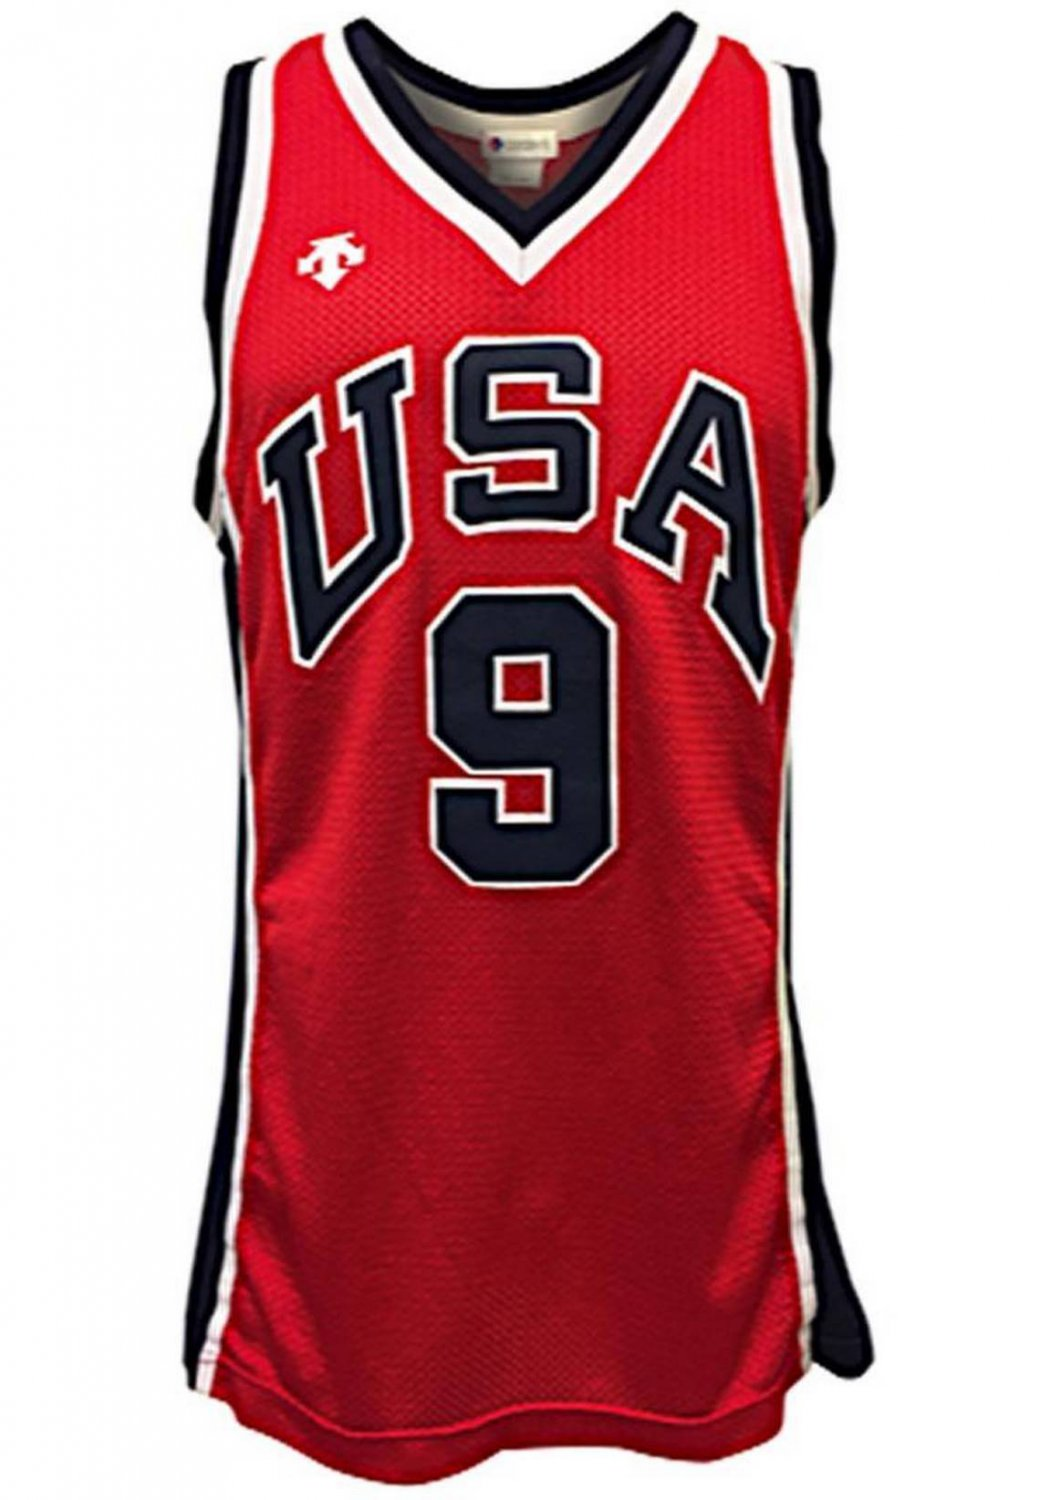 71b9d9a4589 9# Michael Jordan Red Jersey Team USA 1984 Dream Team Olympic Games Fine  Embroidery